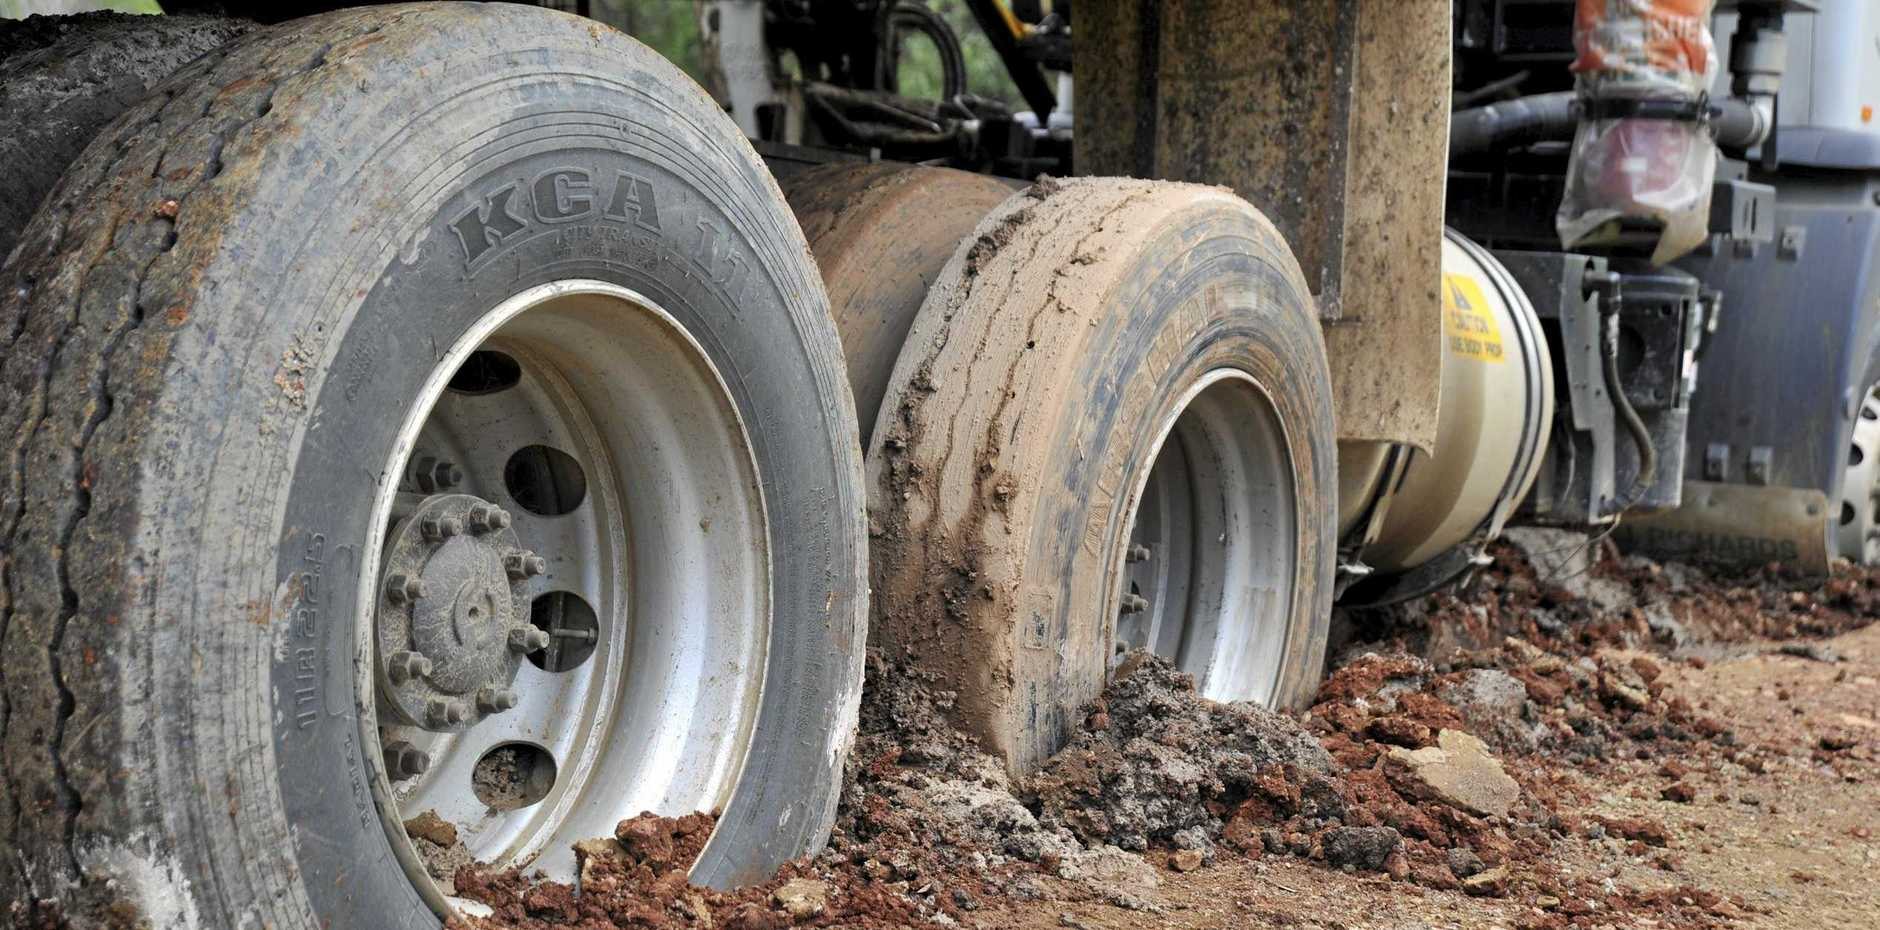 MUDDY ROADS: Lockyer Valley Regional Council will begin fining farms that don't clean up mud they leave on public roads.